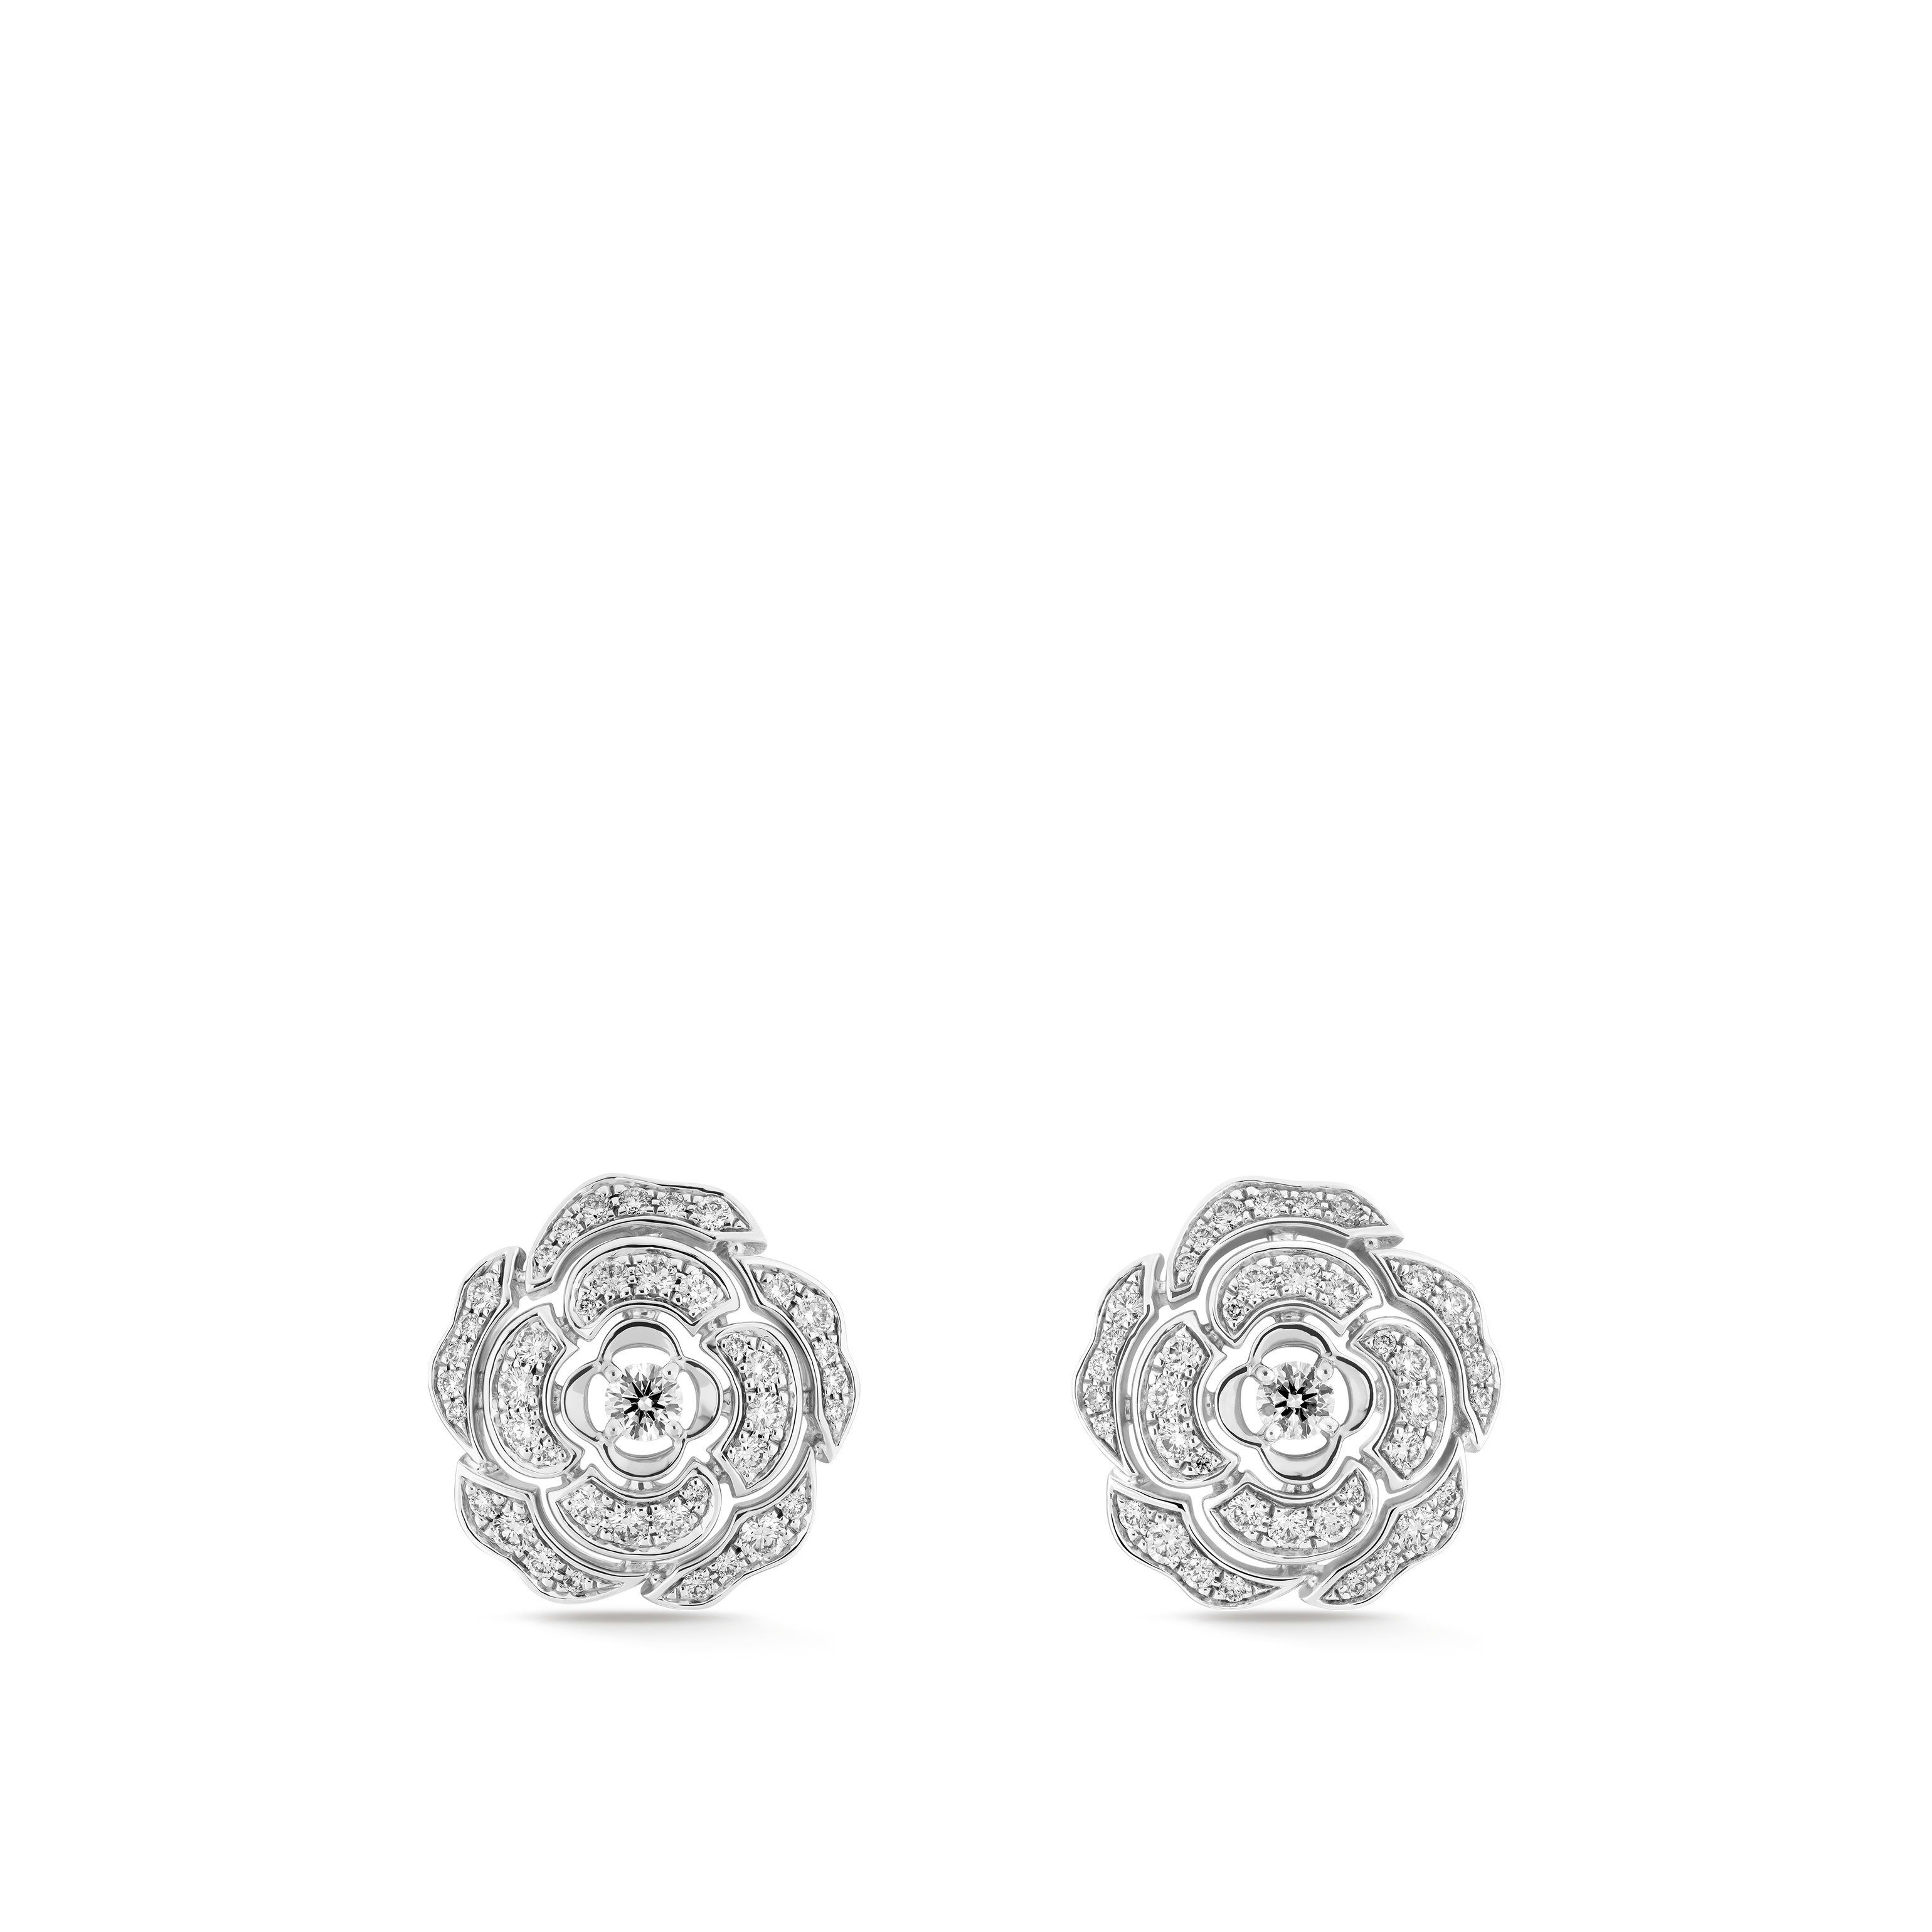 Bouton de Camélia earrings - 18K white gold, diamonds - CHANEL - Default view - see standard sized version